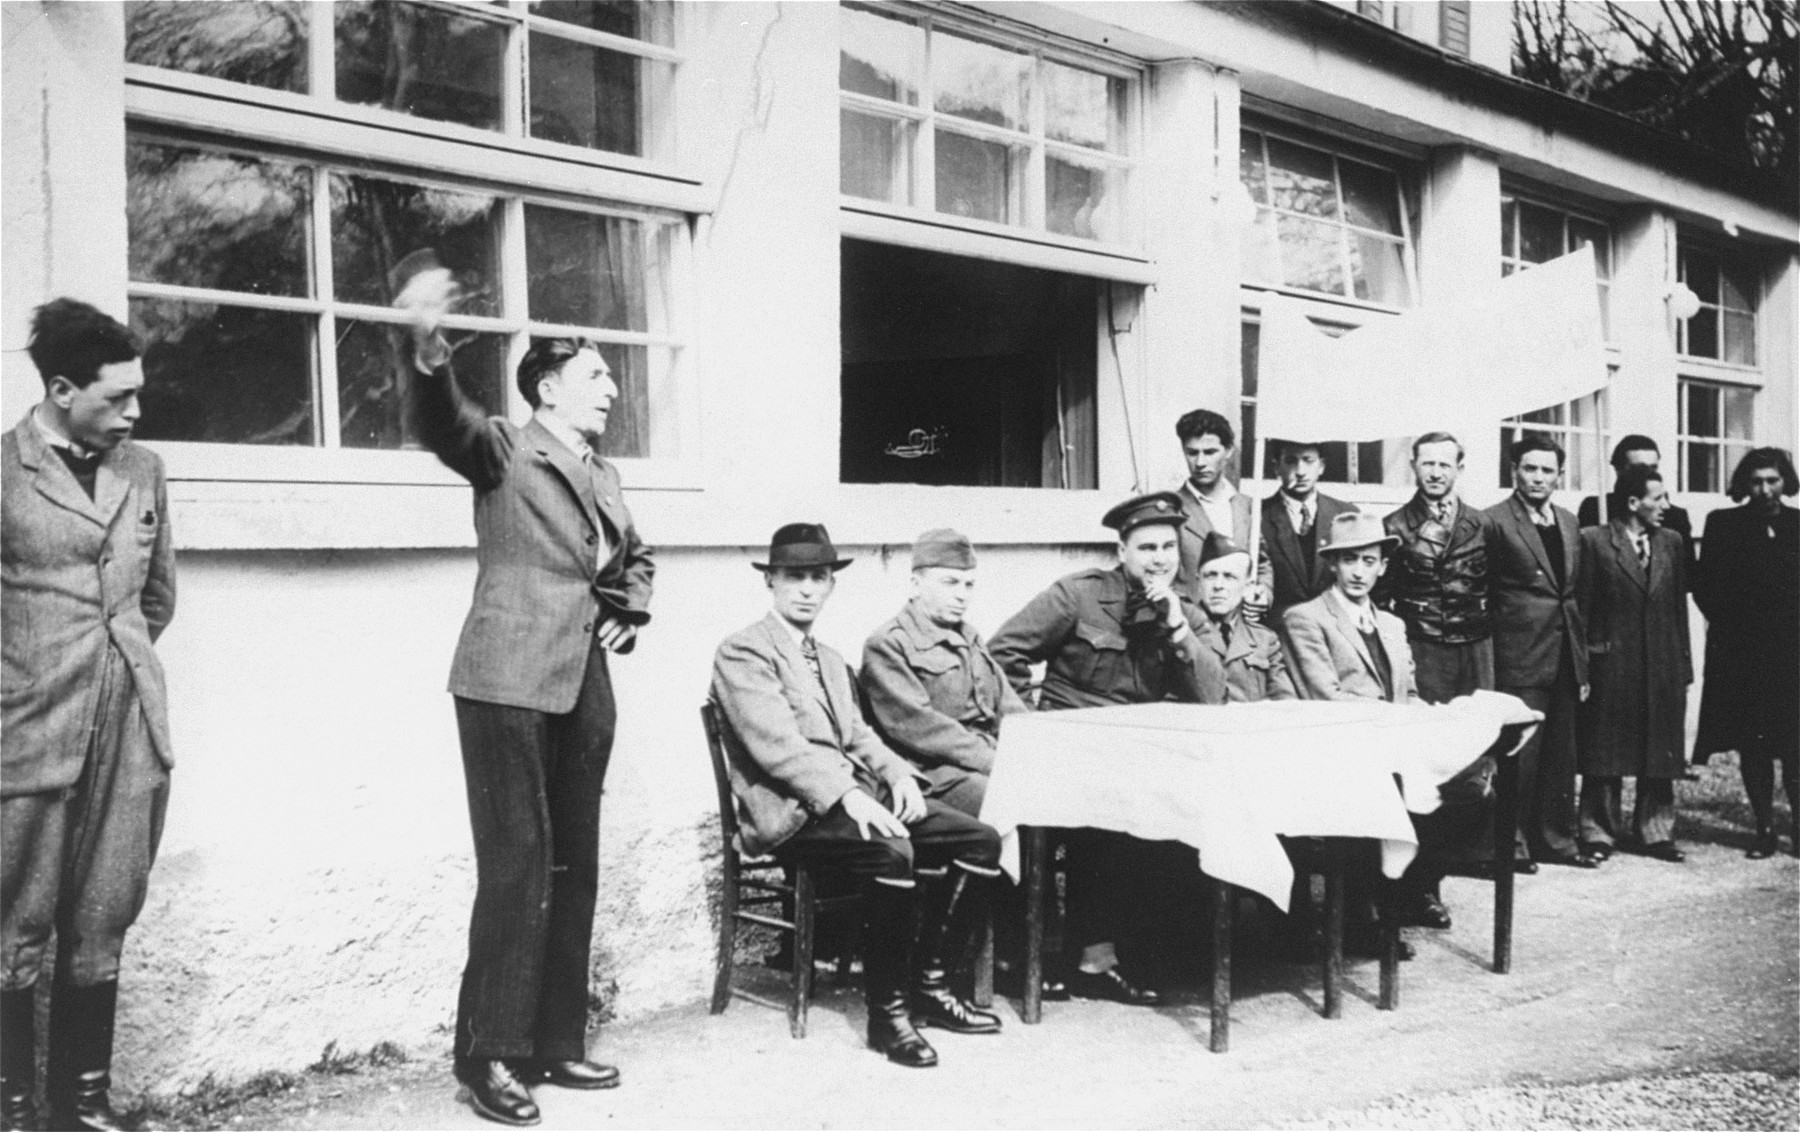 Jewish DPs in the Mittenwald displaced persons camp conduct a meeting at which they protest British immigration policy to Palestine while they commemorate the death march from Dachau to Tyrol.  Among the participants is Mr. Spier, an UNRRA representative.